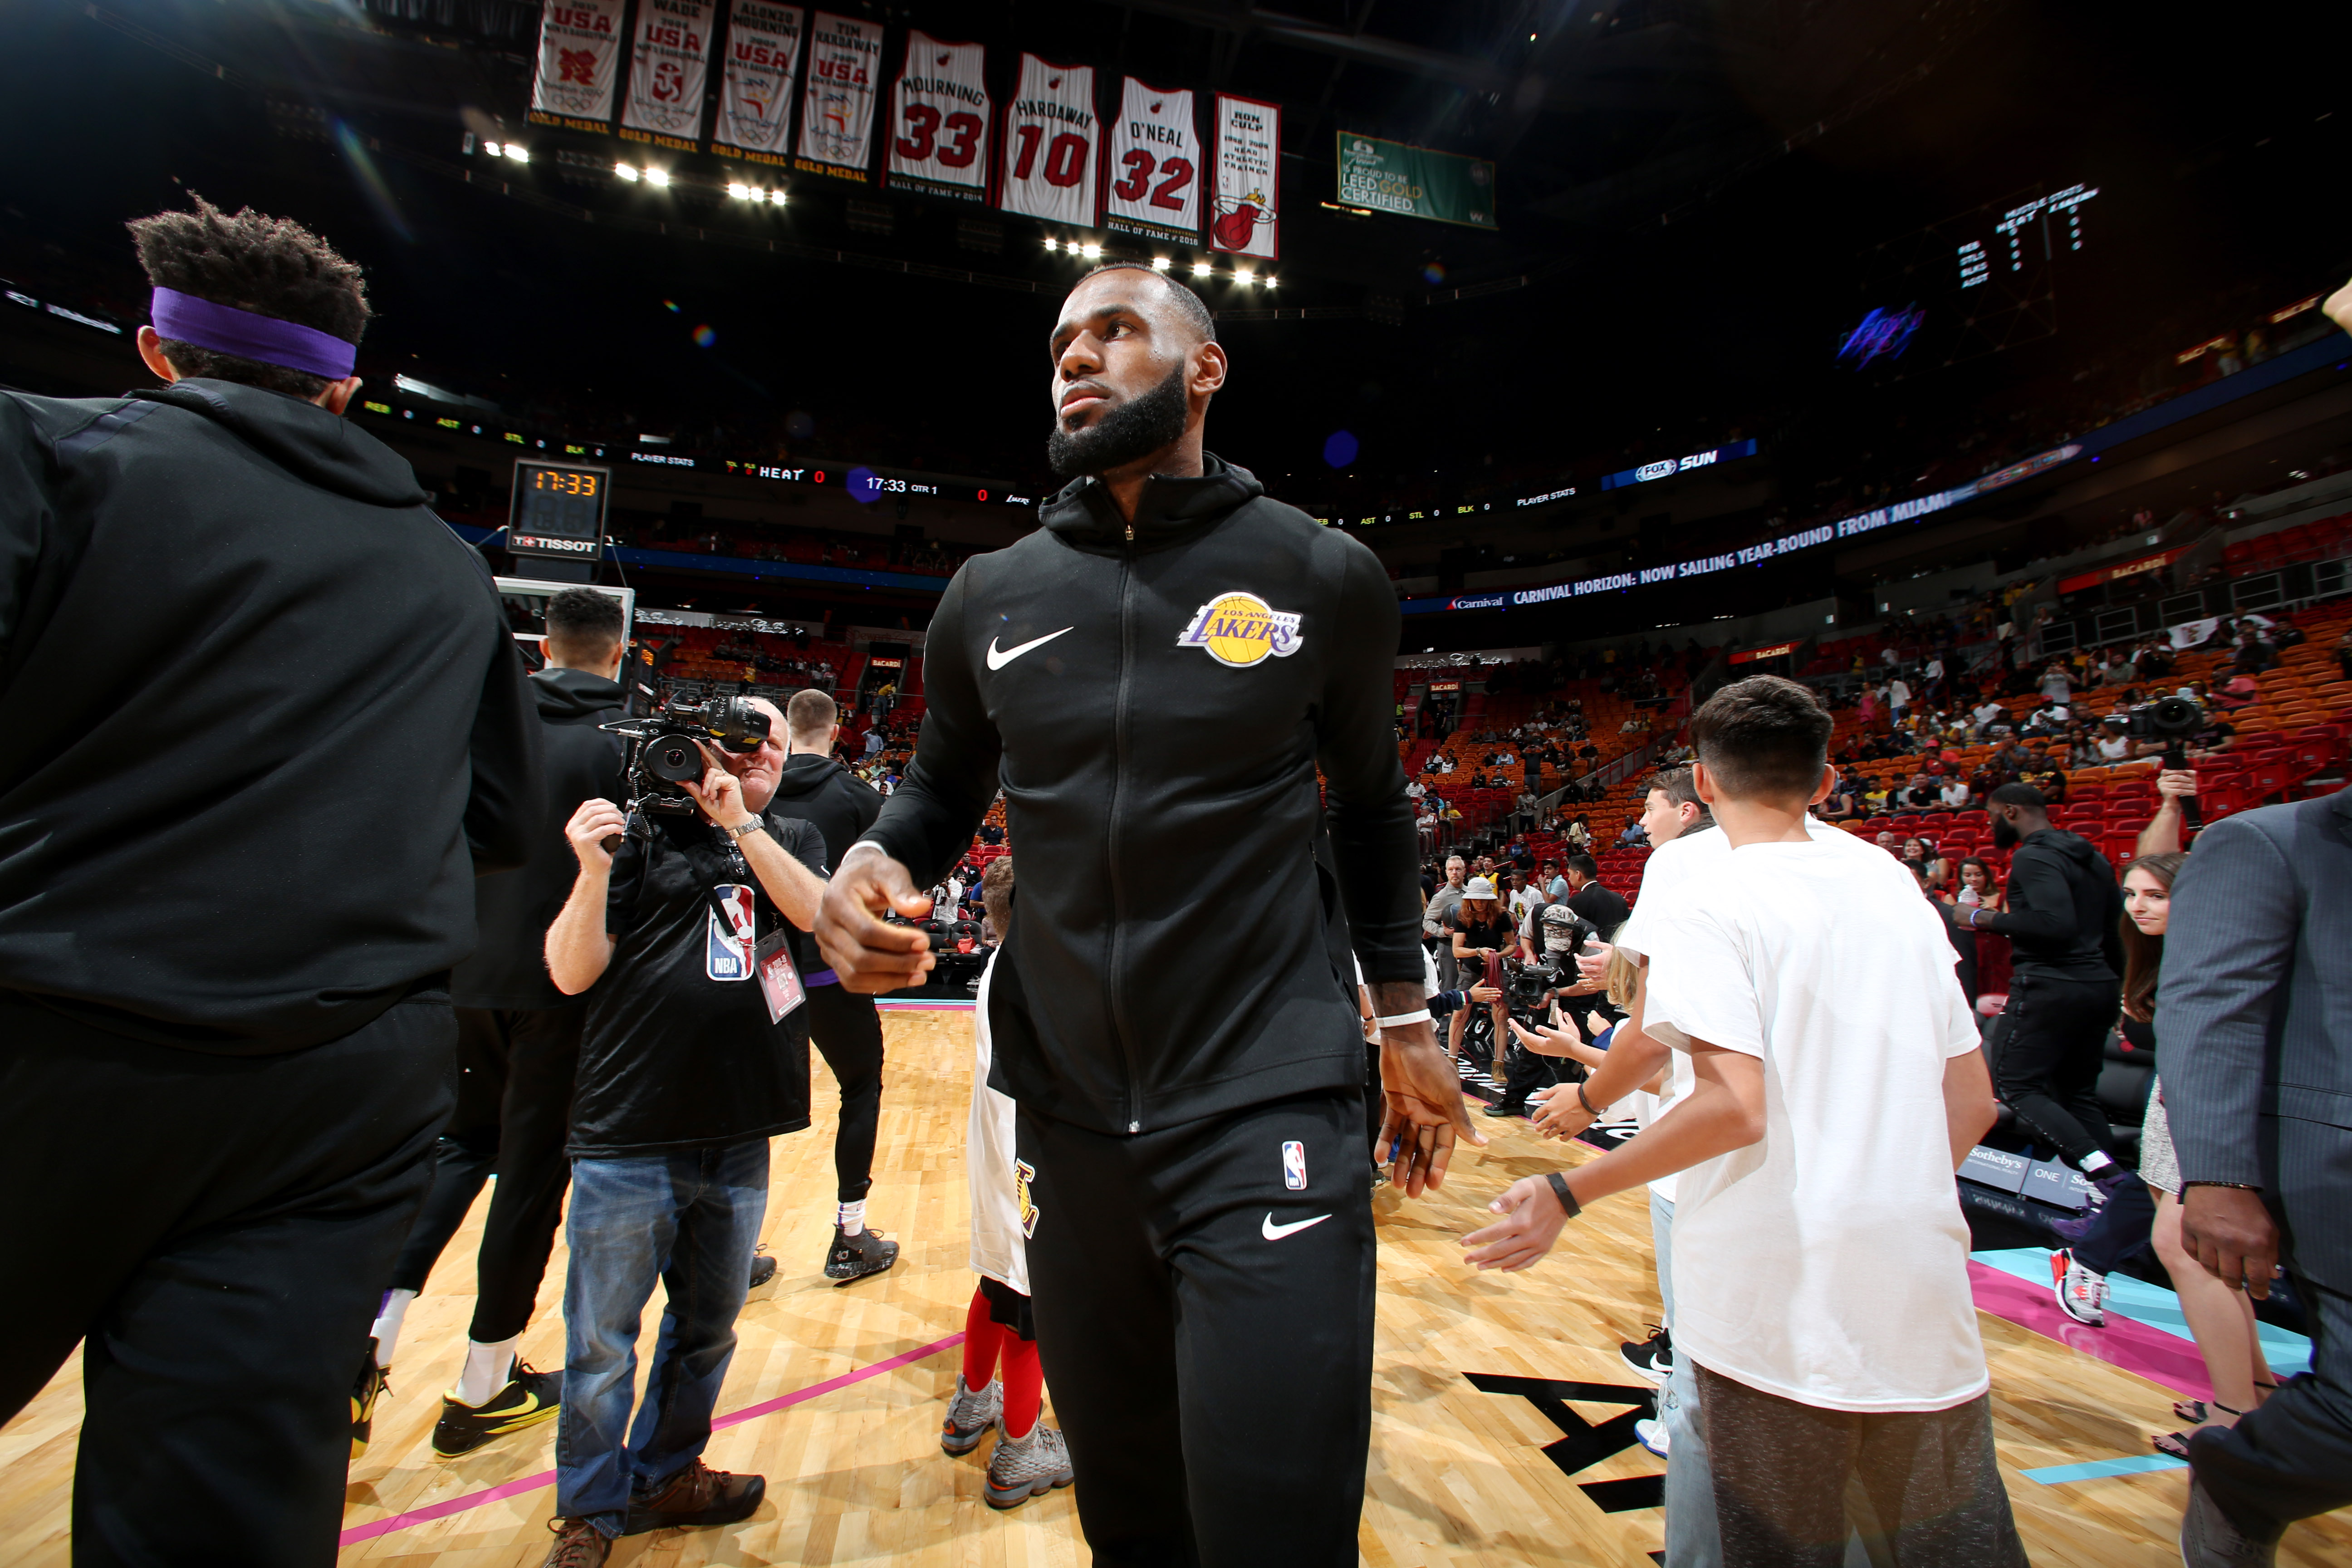 74d7dbb80ce2 LeBron James  return to Cleveland highlights new era of former player  tributes